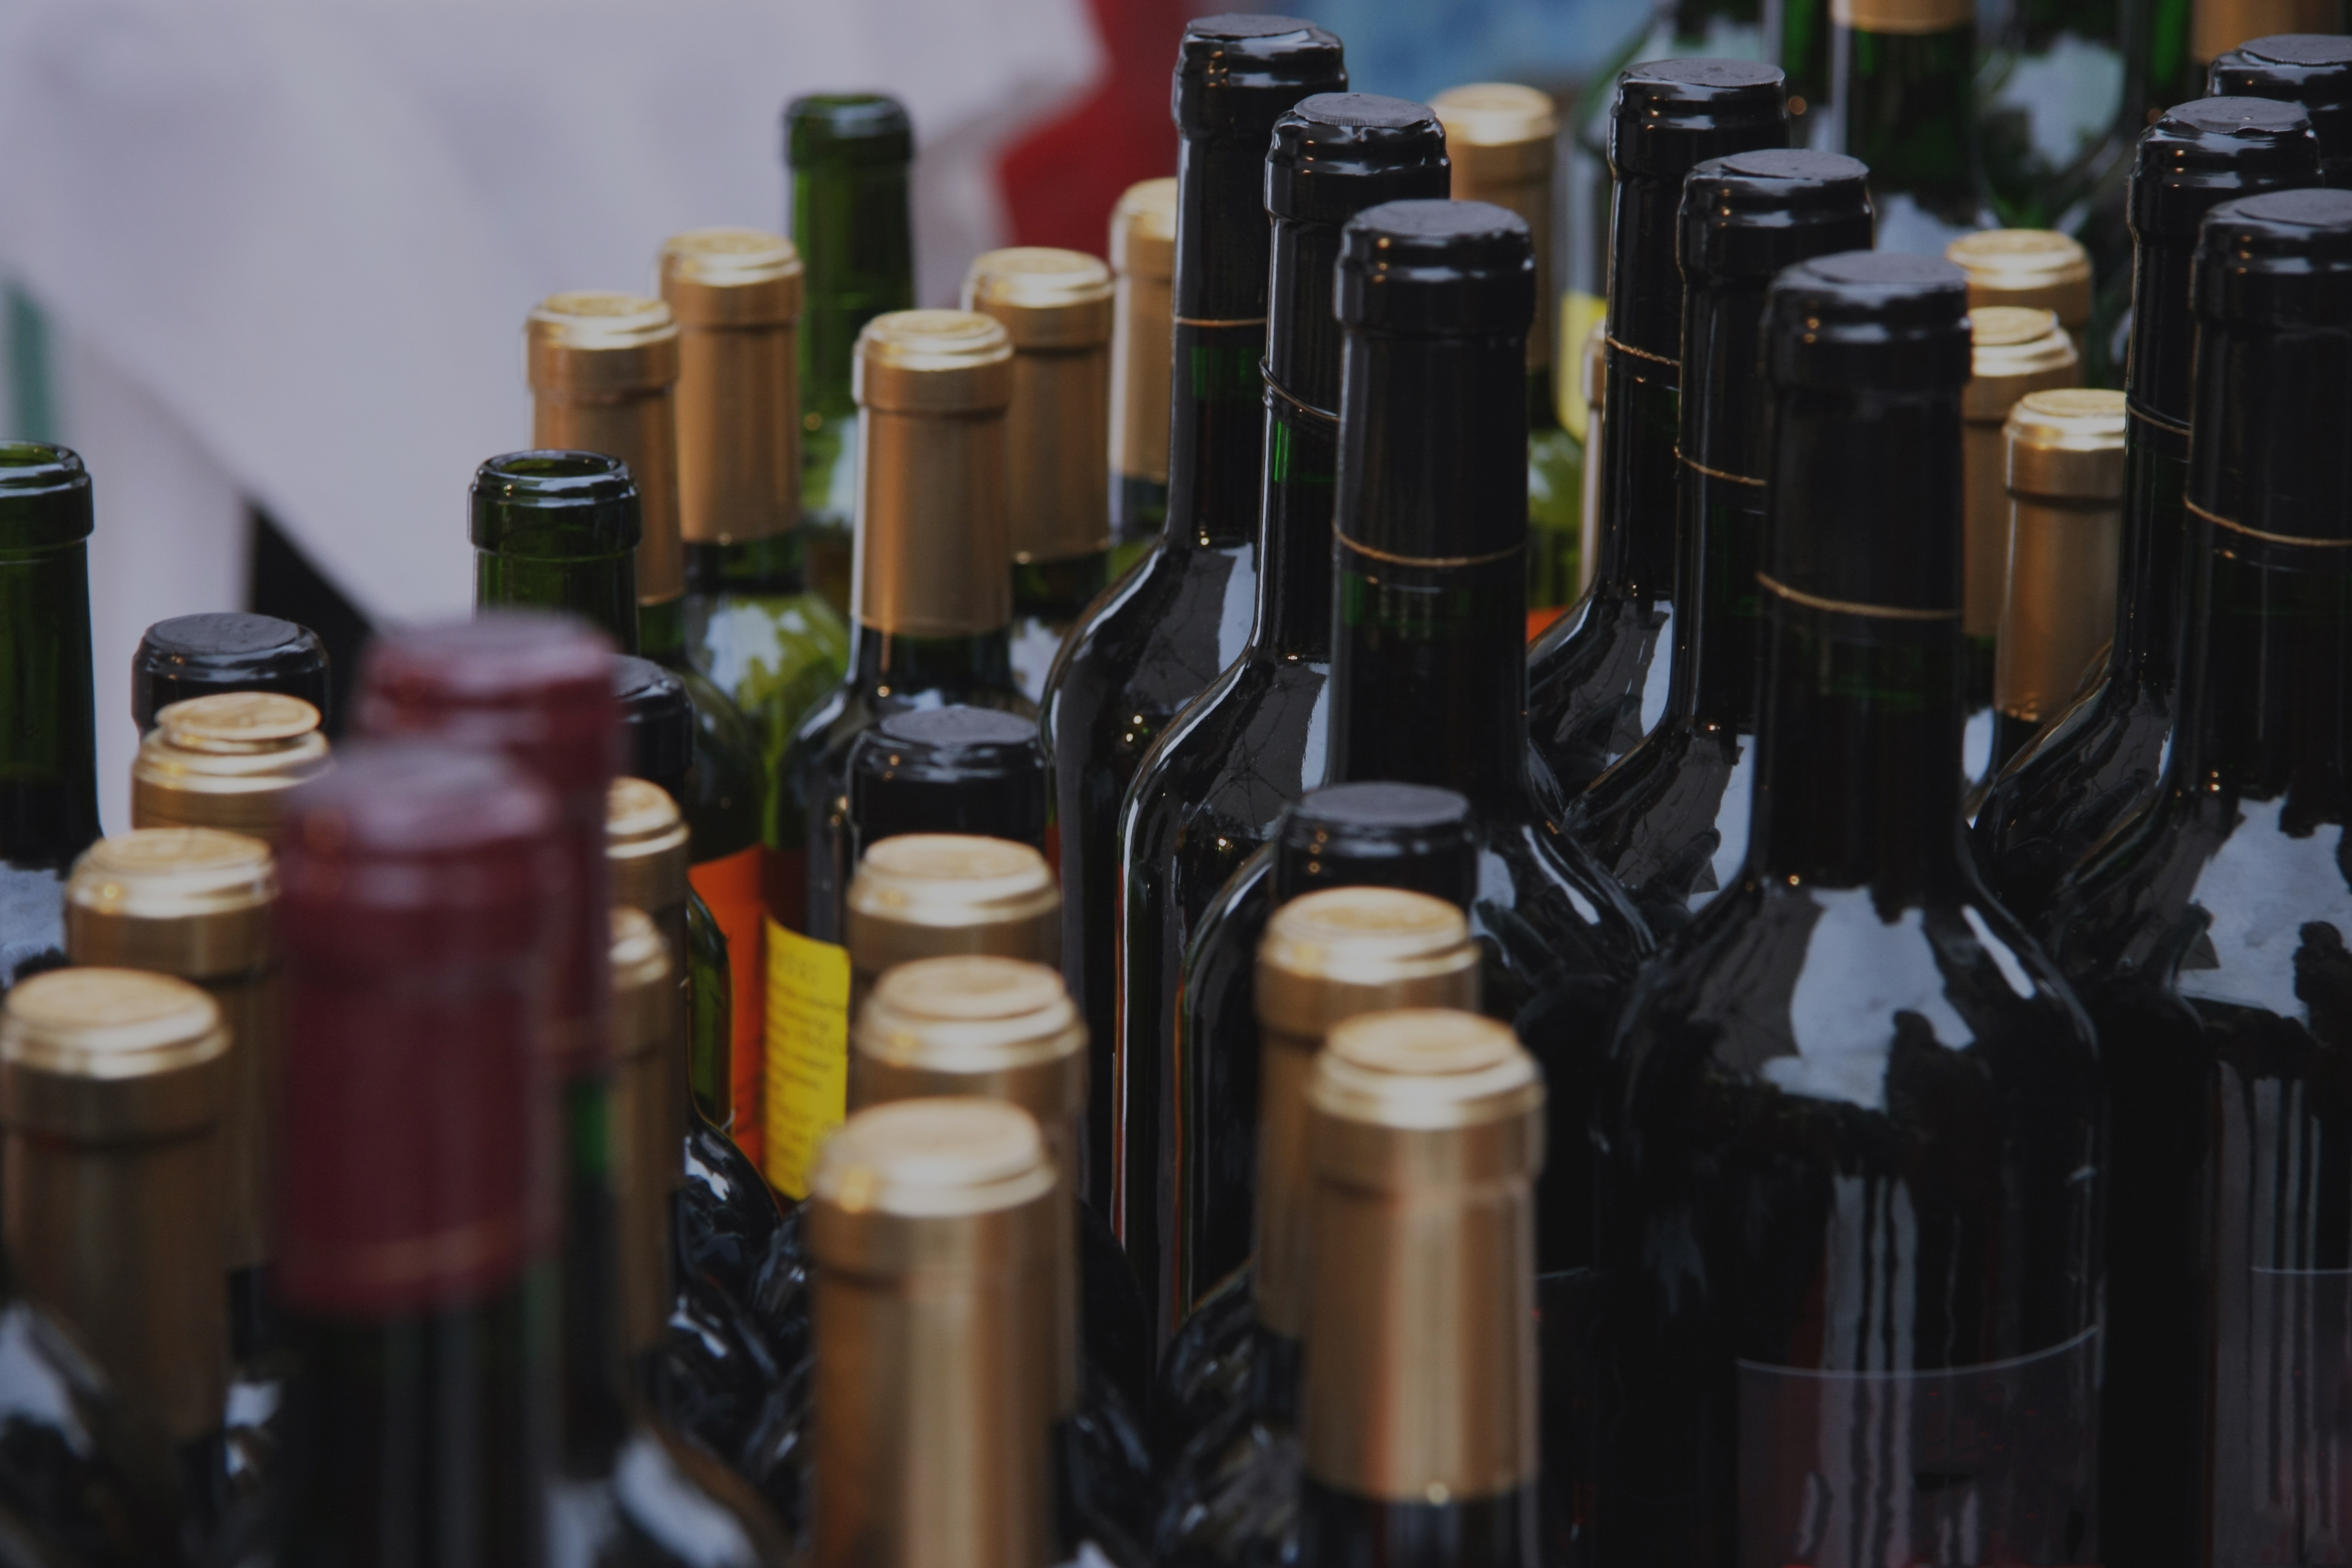 Sales and marketing recruitment solutions and vacancies - Wine bottle storage angle ...